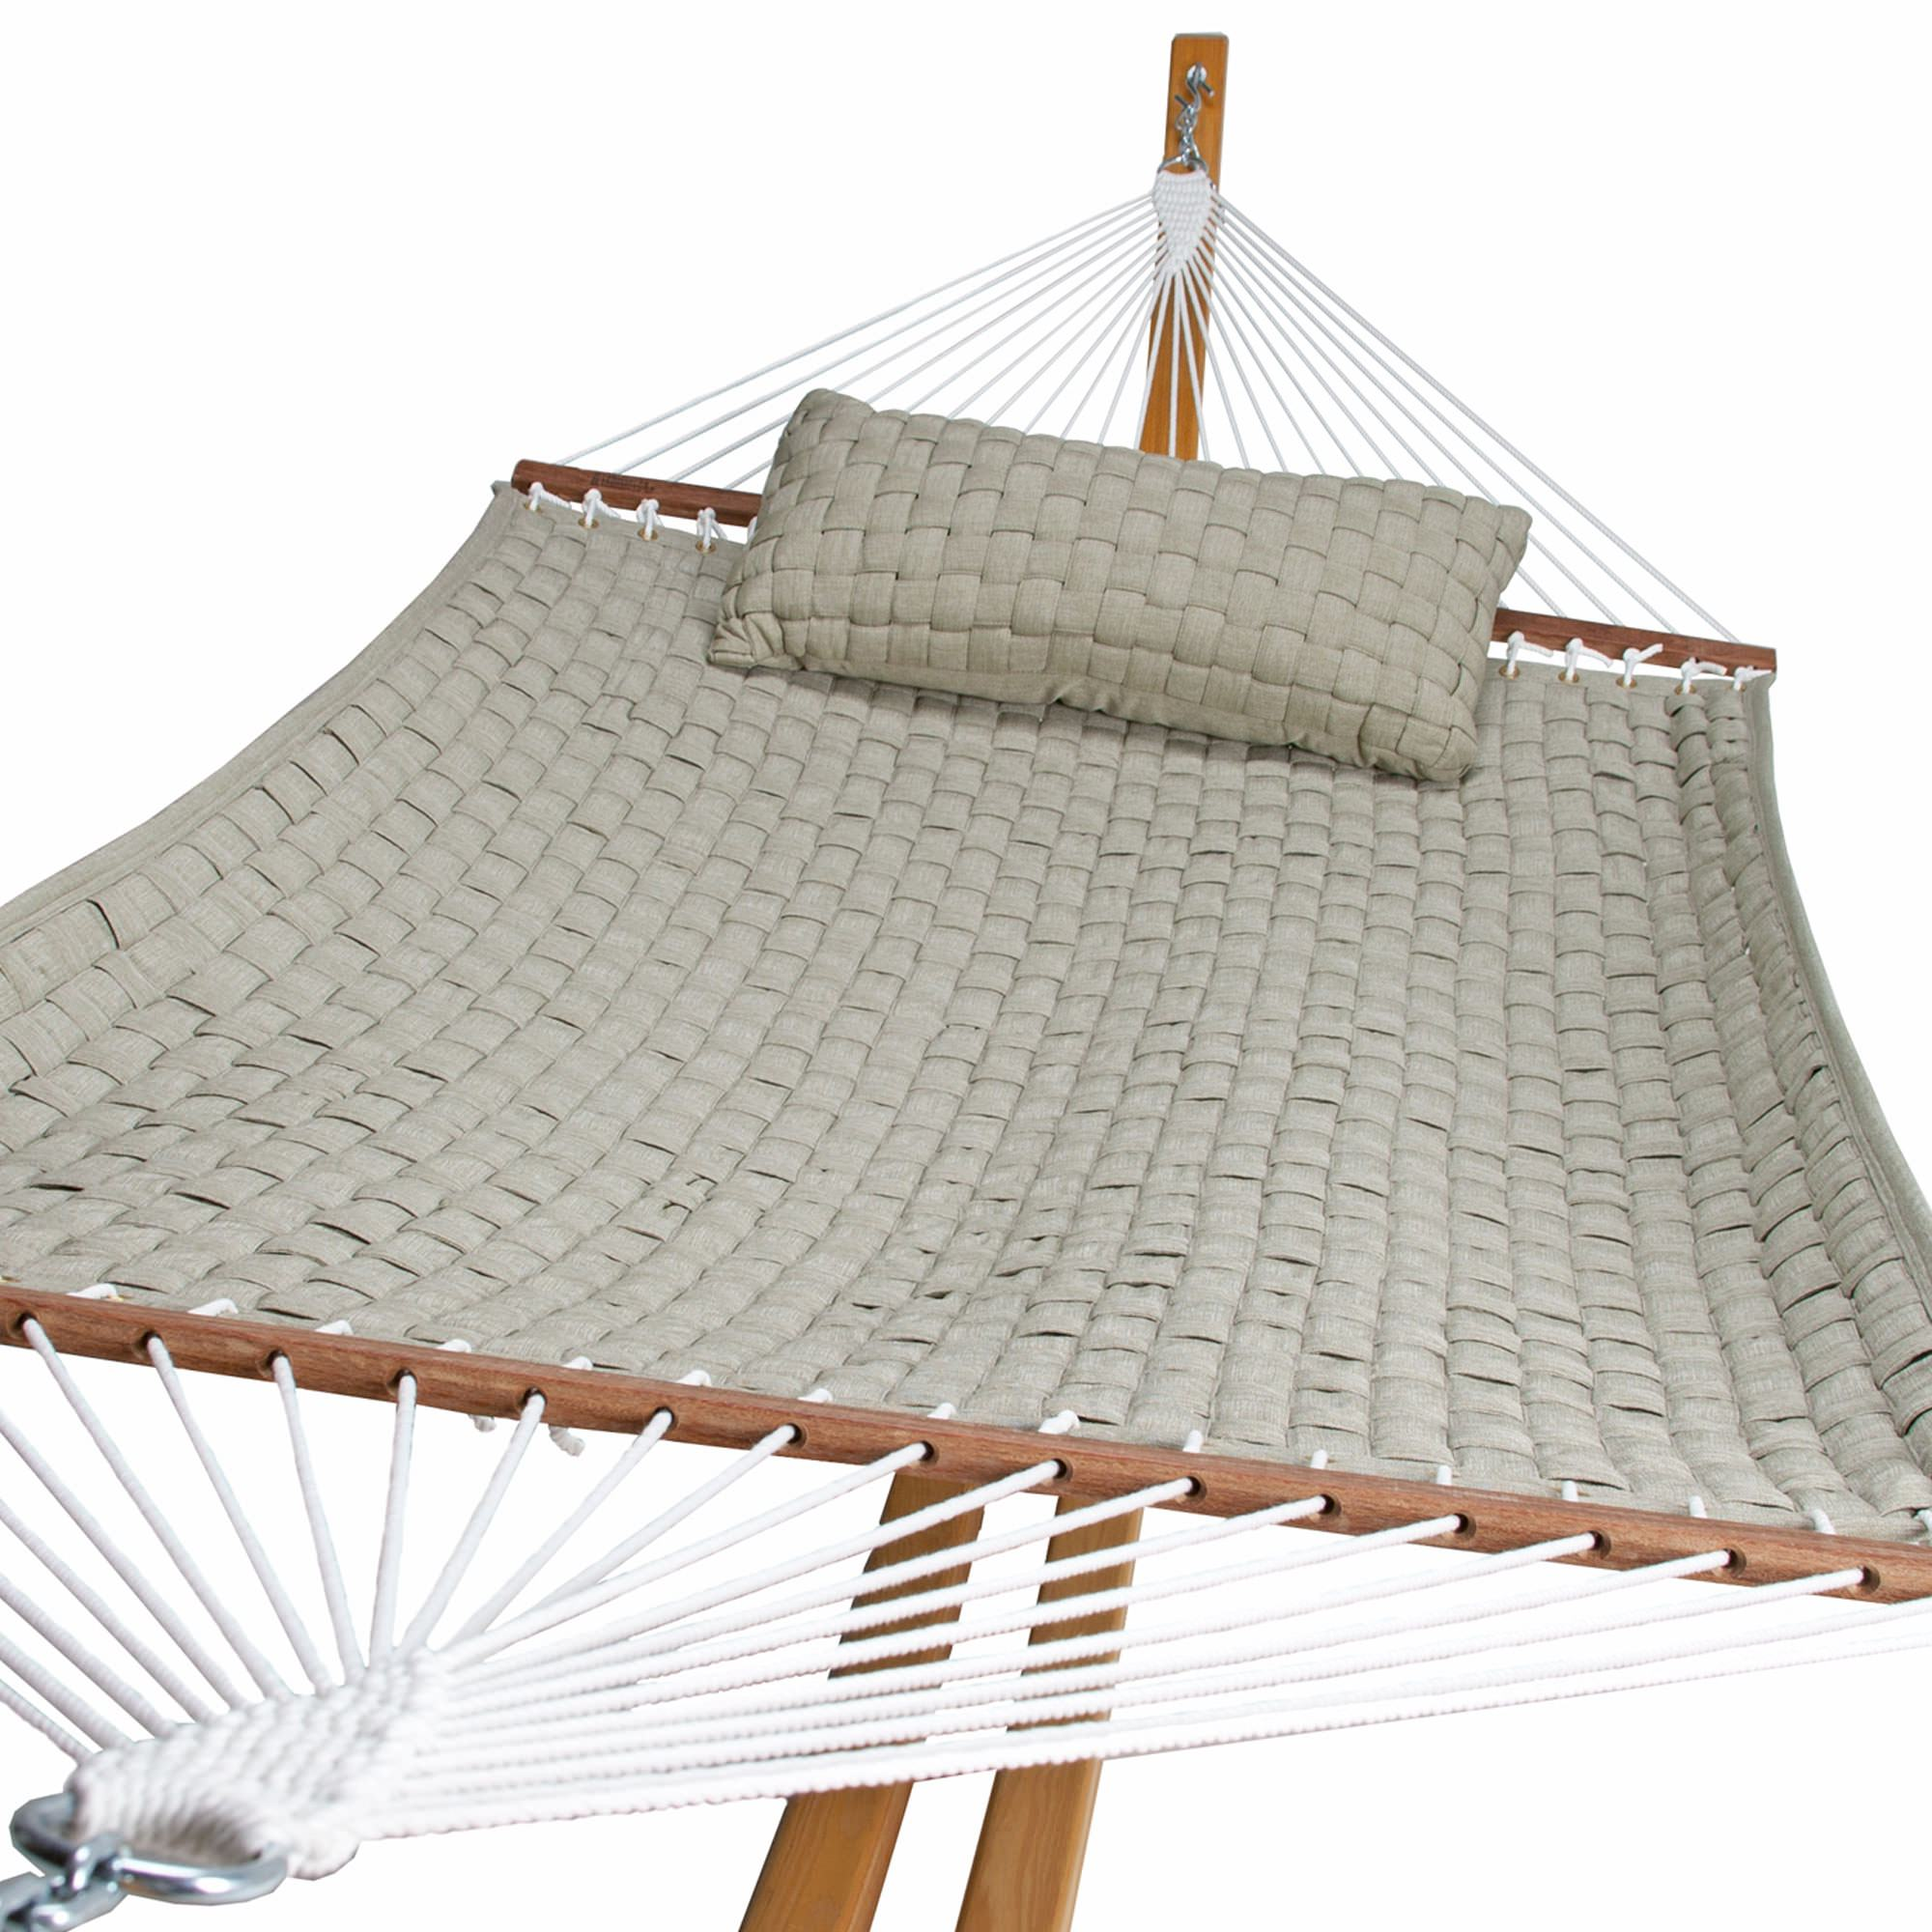 Soft Weave Hammock - Flax by Hatteras Hammocks